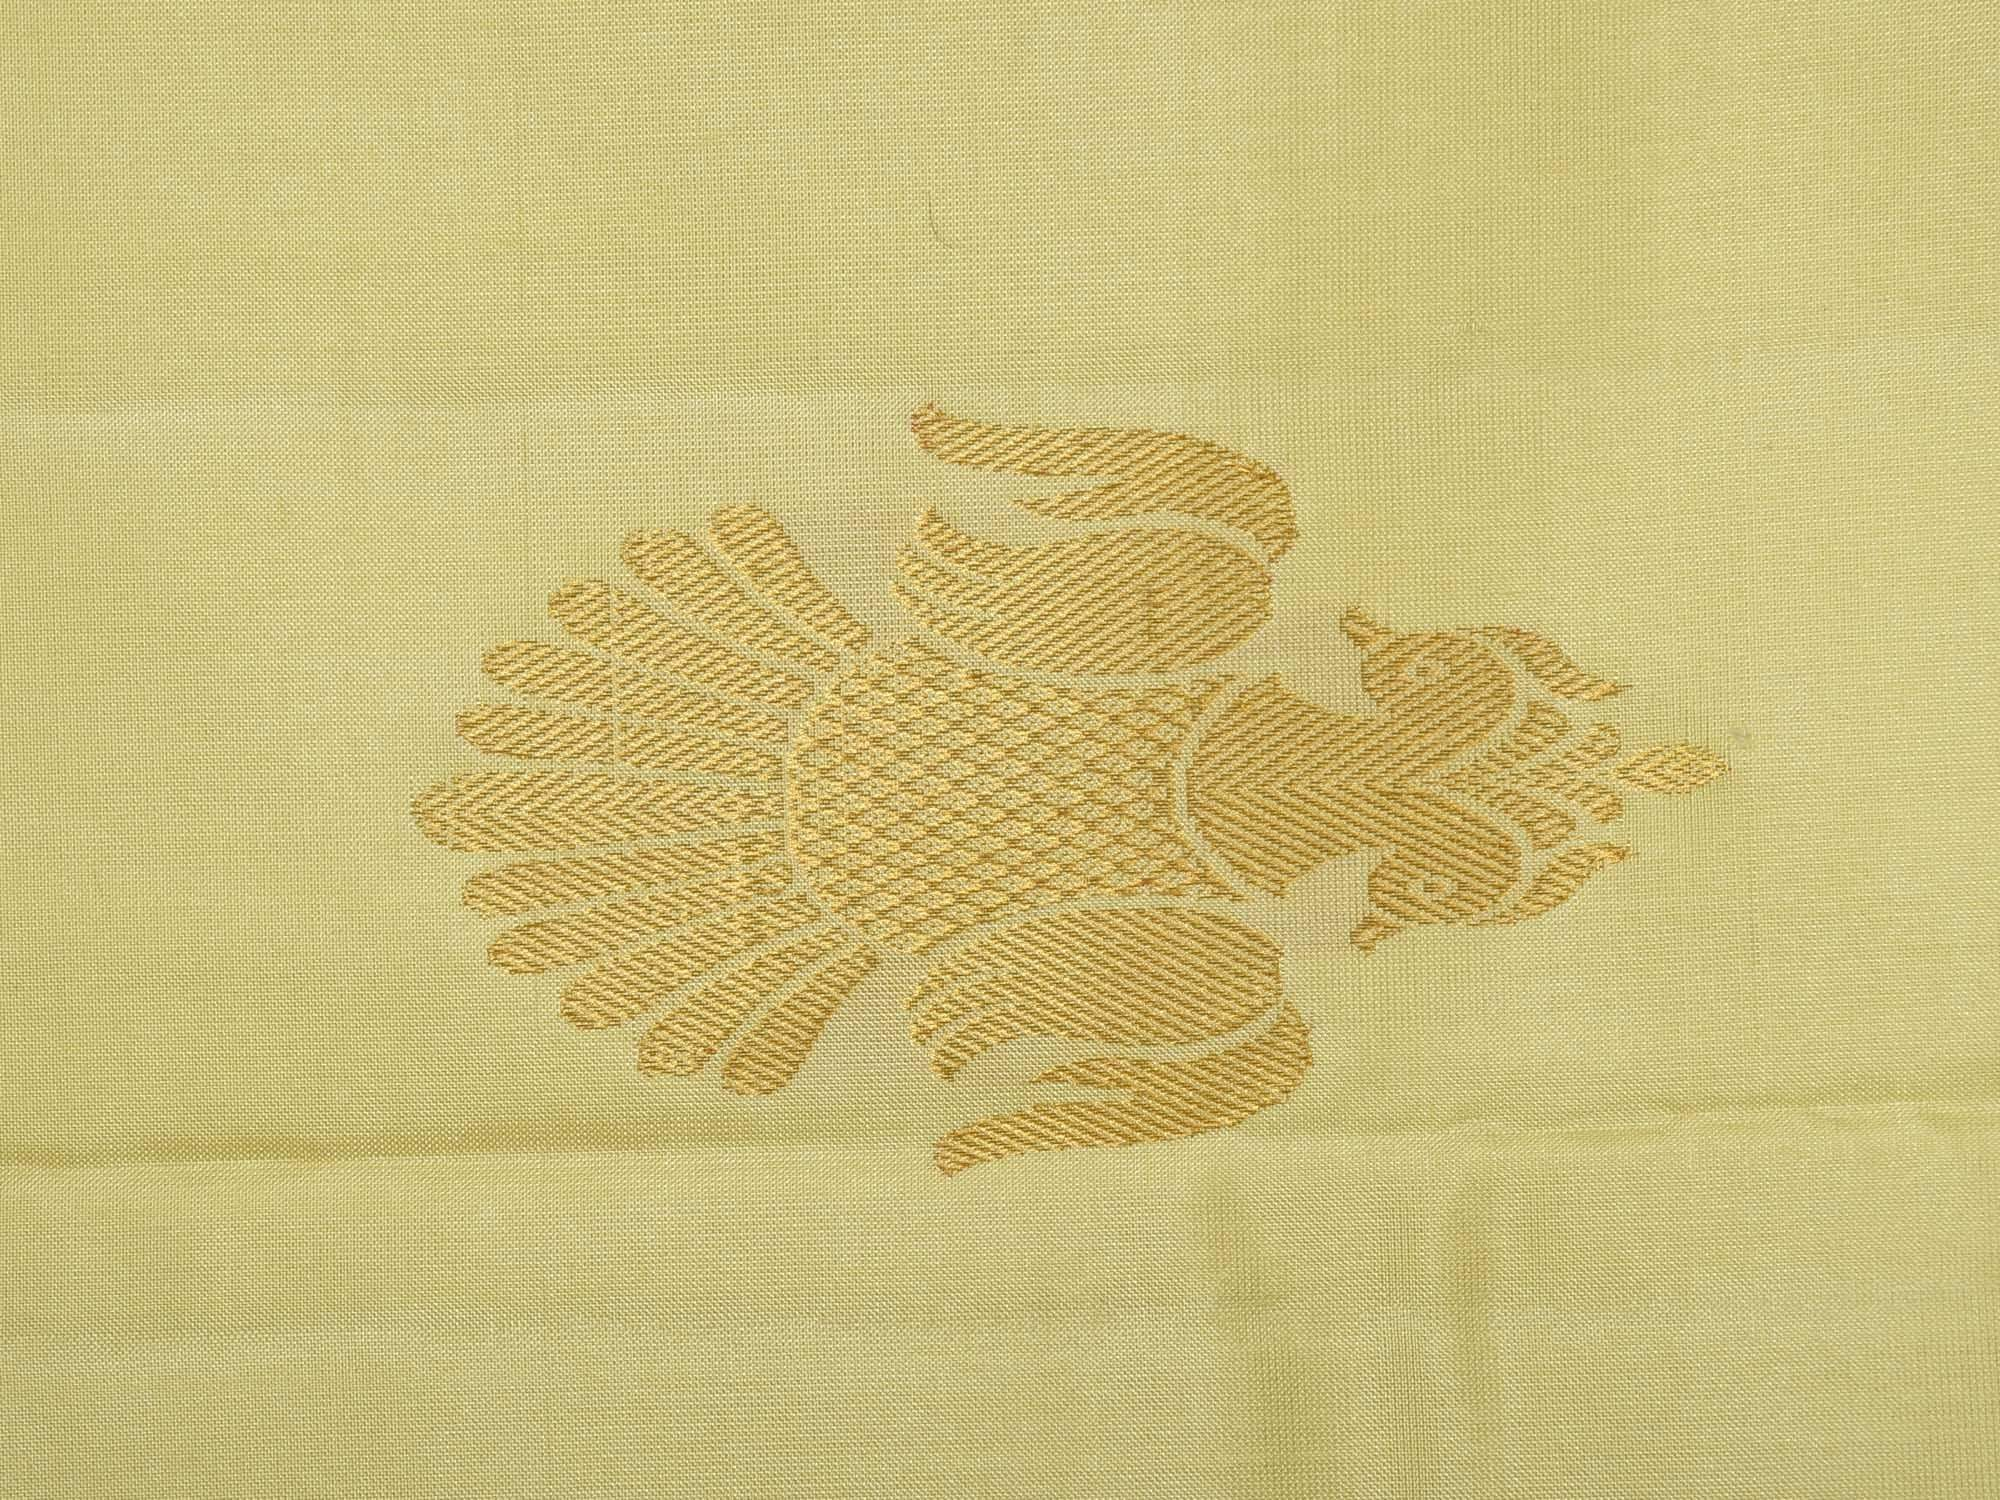 Cream Kanchipuram Silk Handloom Saree with Corner and Buta Gandaberunda Design K0459